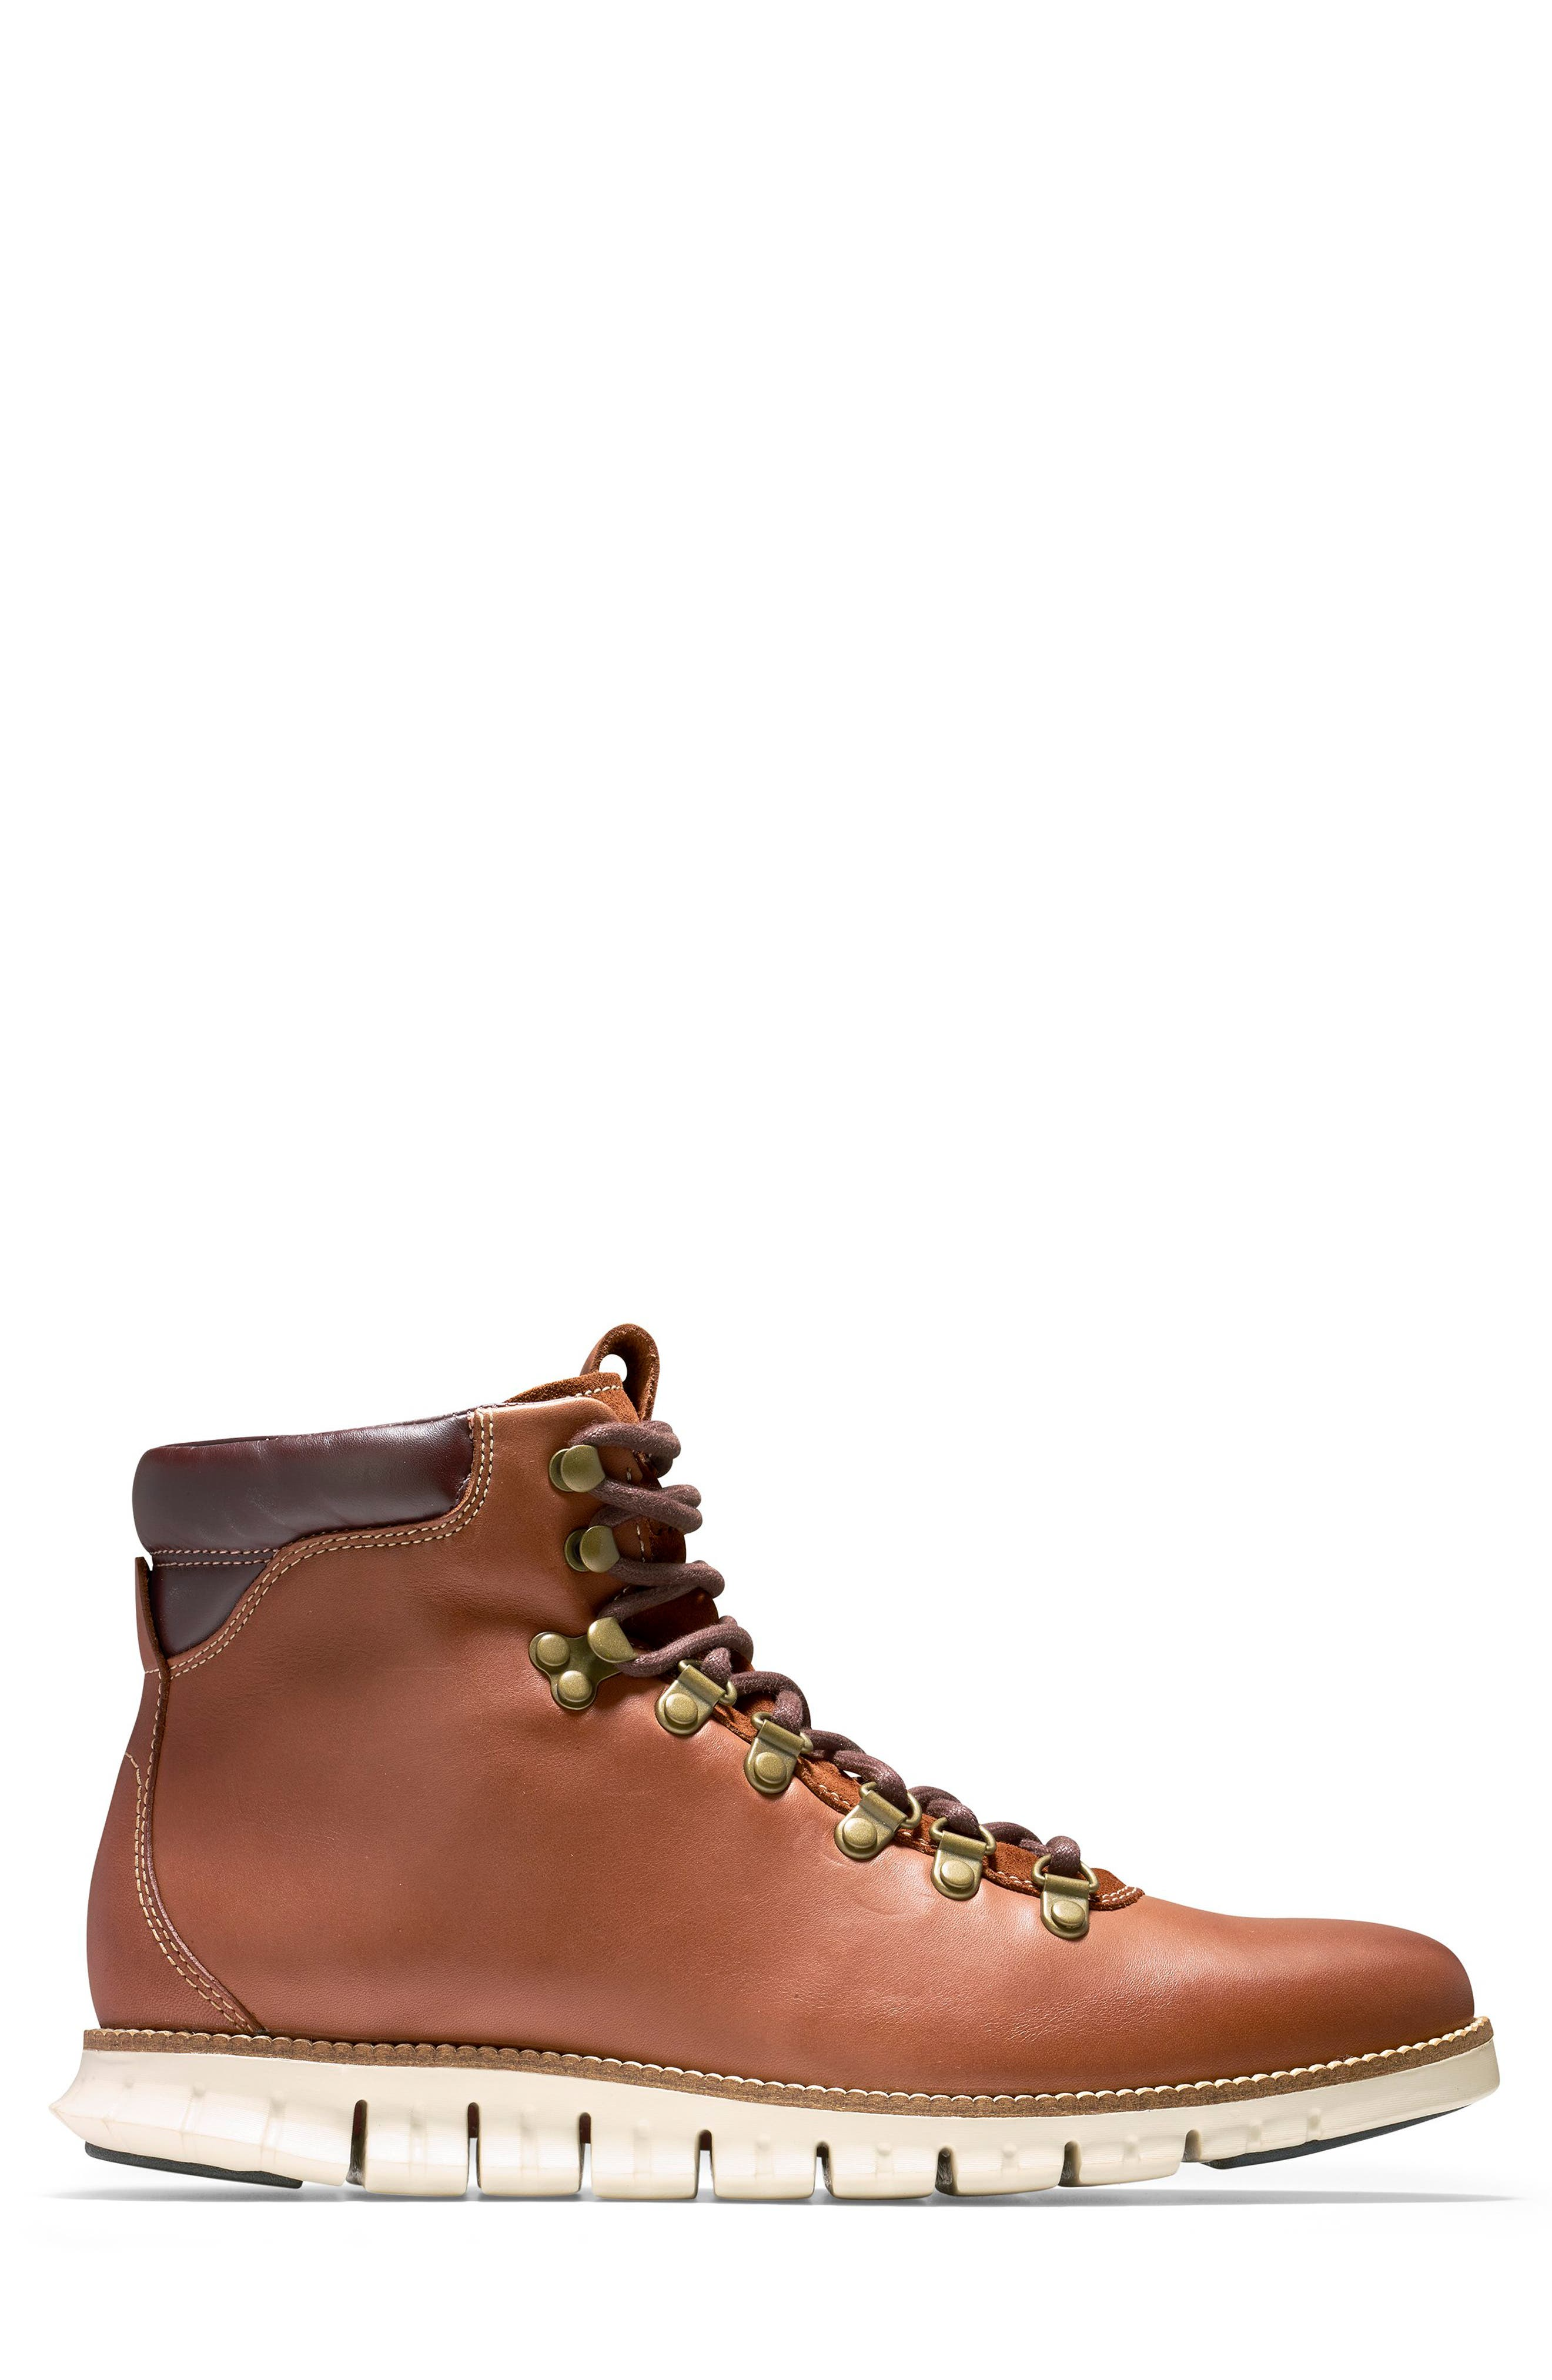 COLE HAAN, ZeroGrand Water Resistant Hiker Boot, Alternate thumbnail 3, color, WOODBURY / IVORY LEATHER